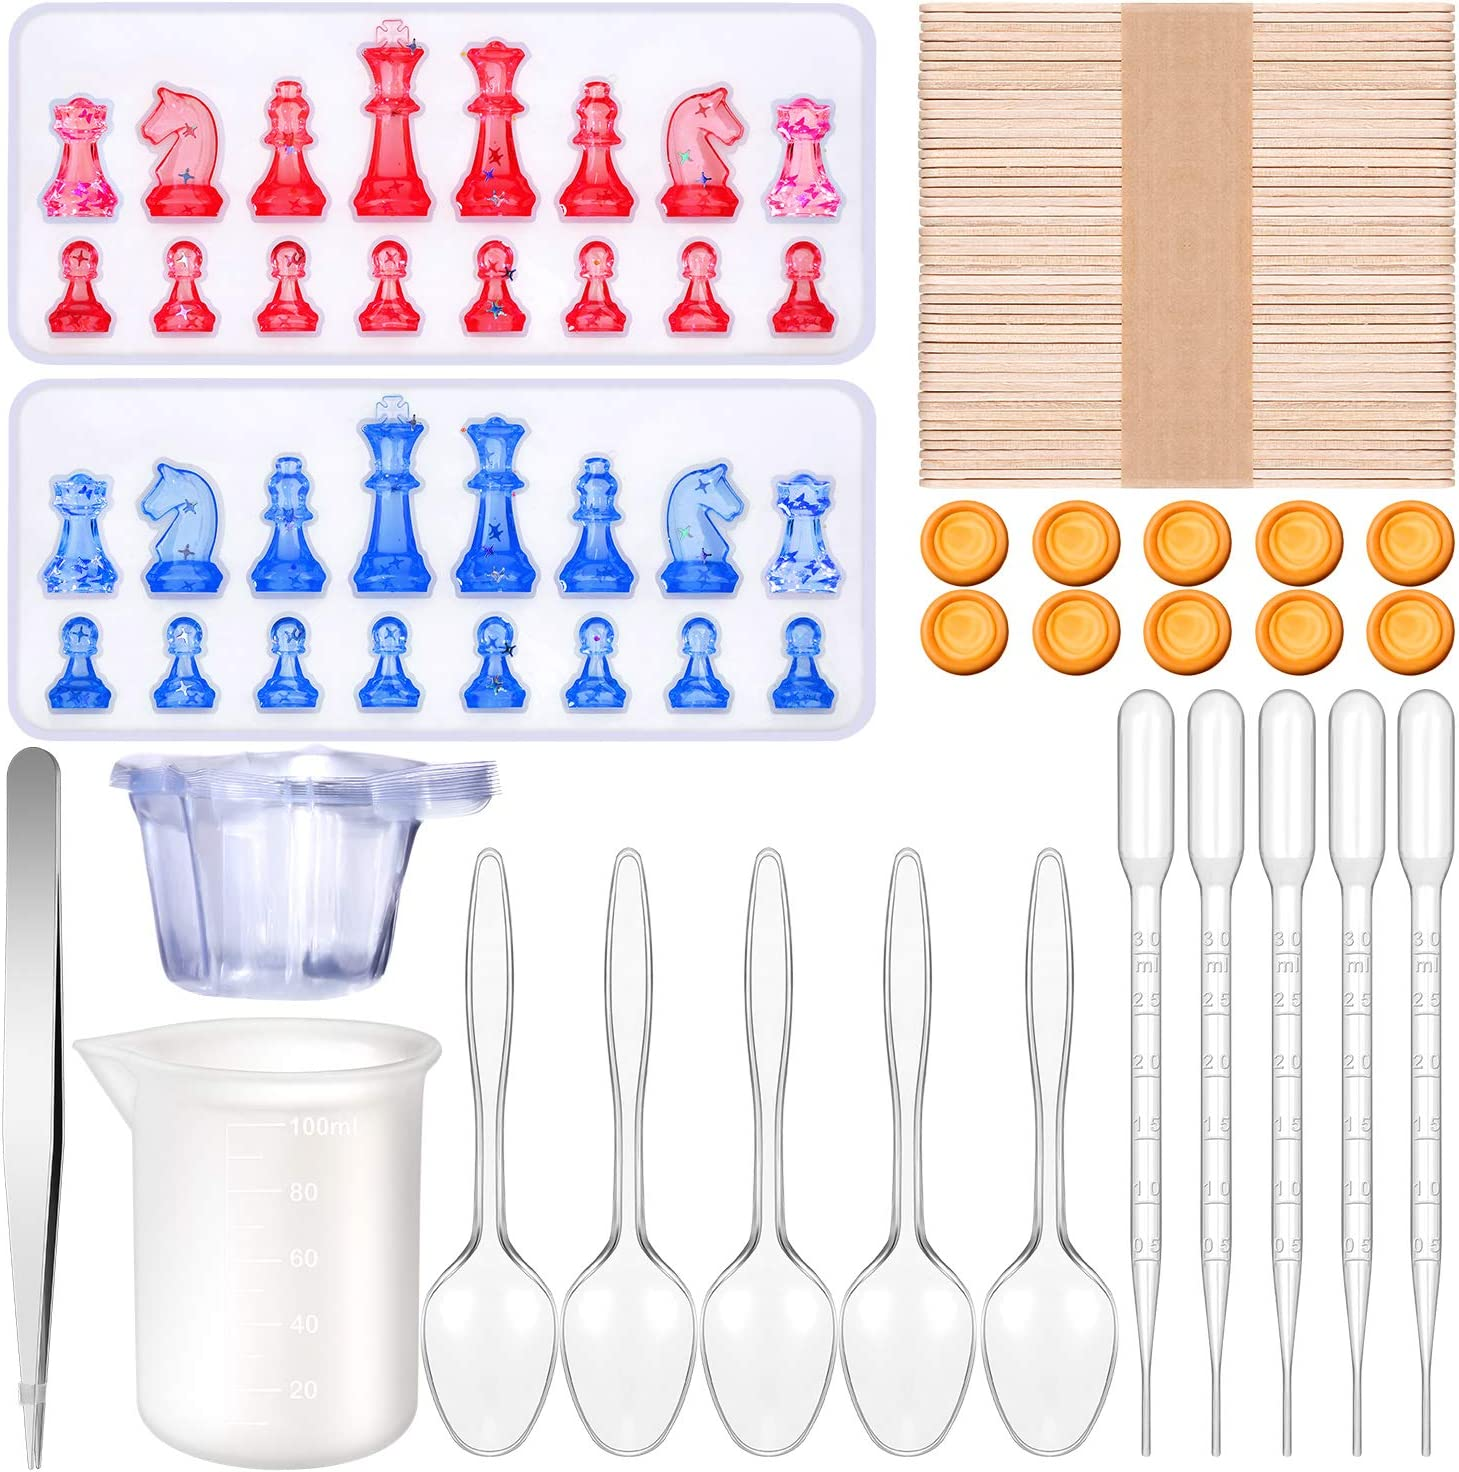 84 Pieces Chess Shape Mold Set, Including Chess Silicone Mold Chess Shape Resin Mold with DIY Making Tools for Craft Project Decoration DIY Supplies